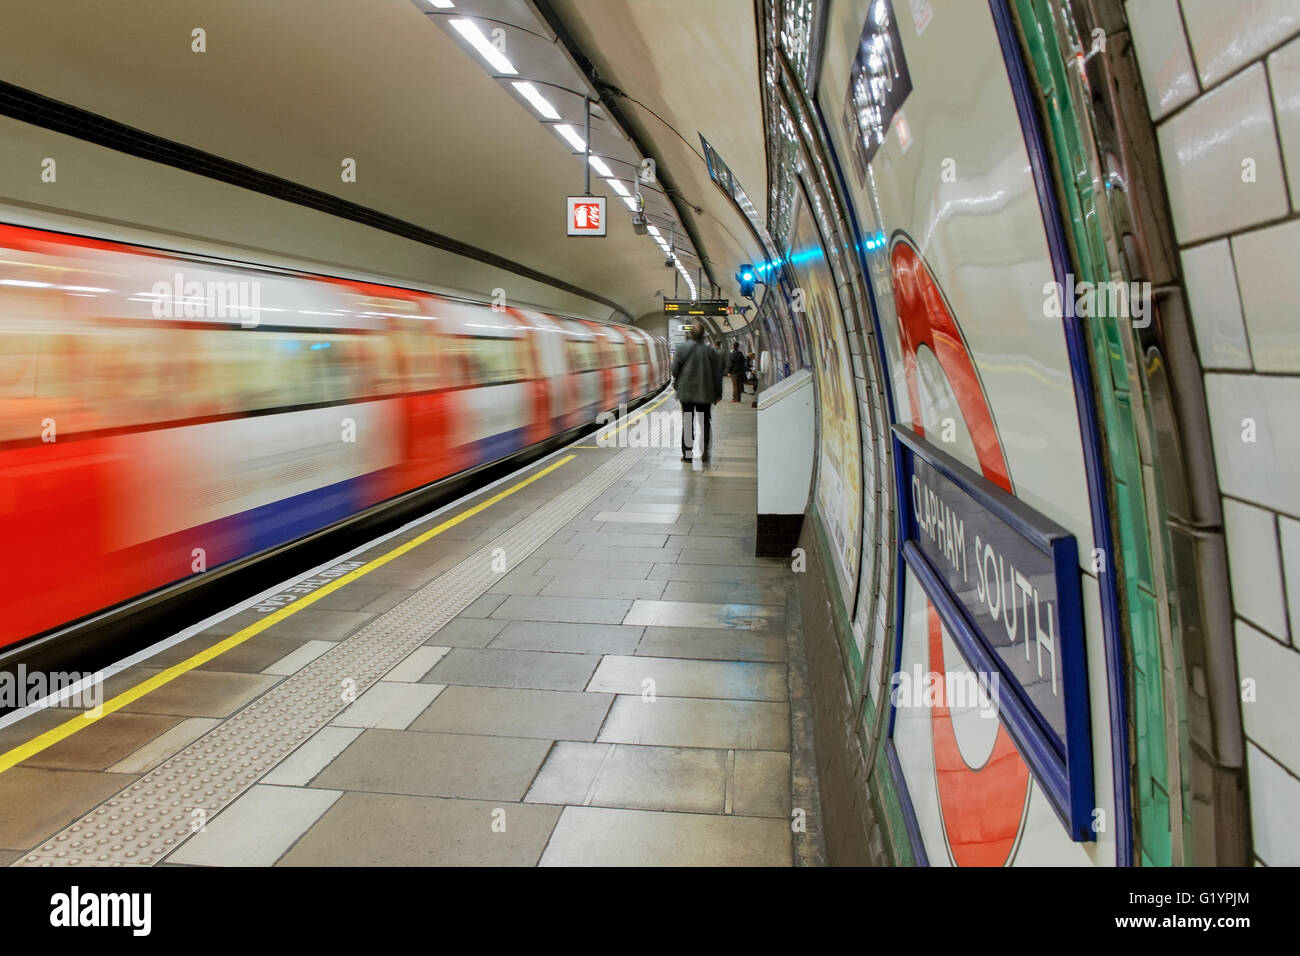 Inside view of London underground with motion train. - Stock Image